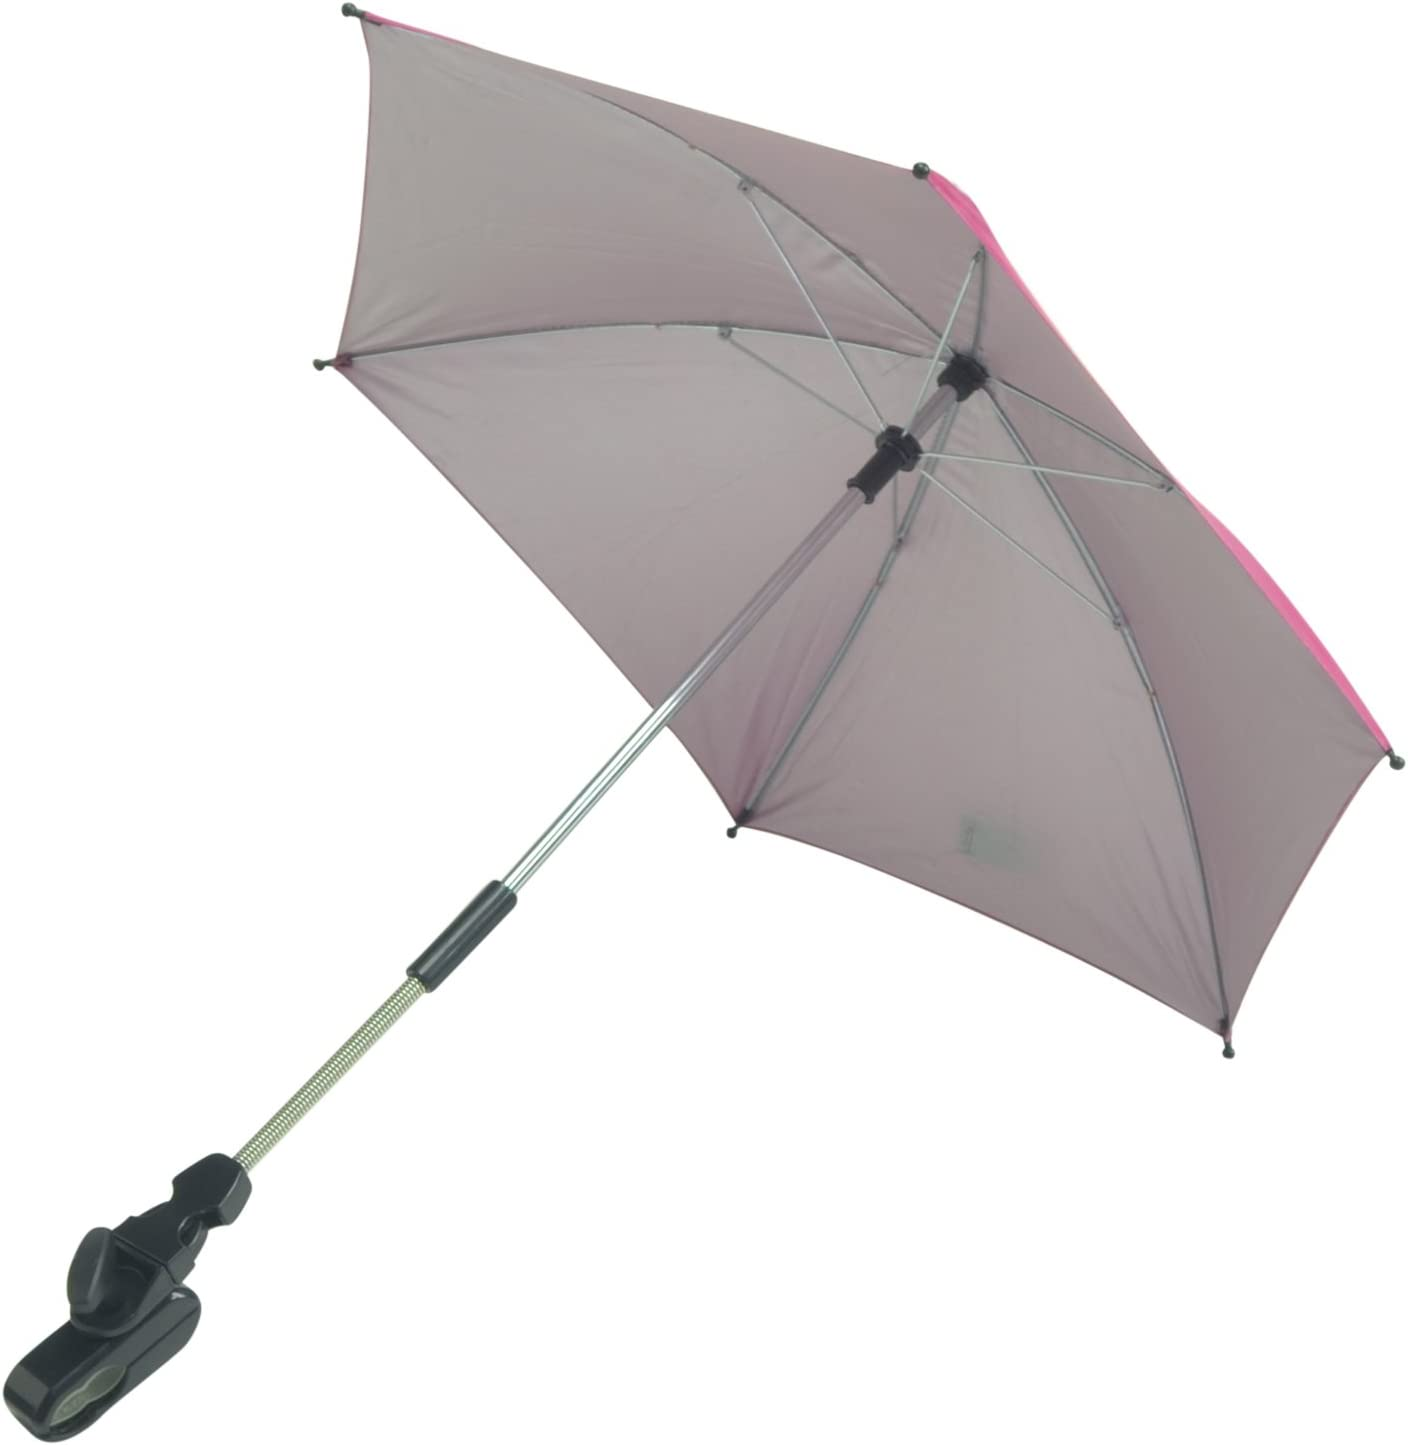 Rose vif For-your-Little-One Parasol Compatible avec Aubert Concept Phorex Canne l/ég/ère